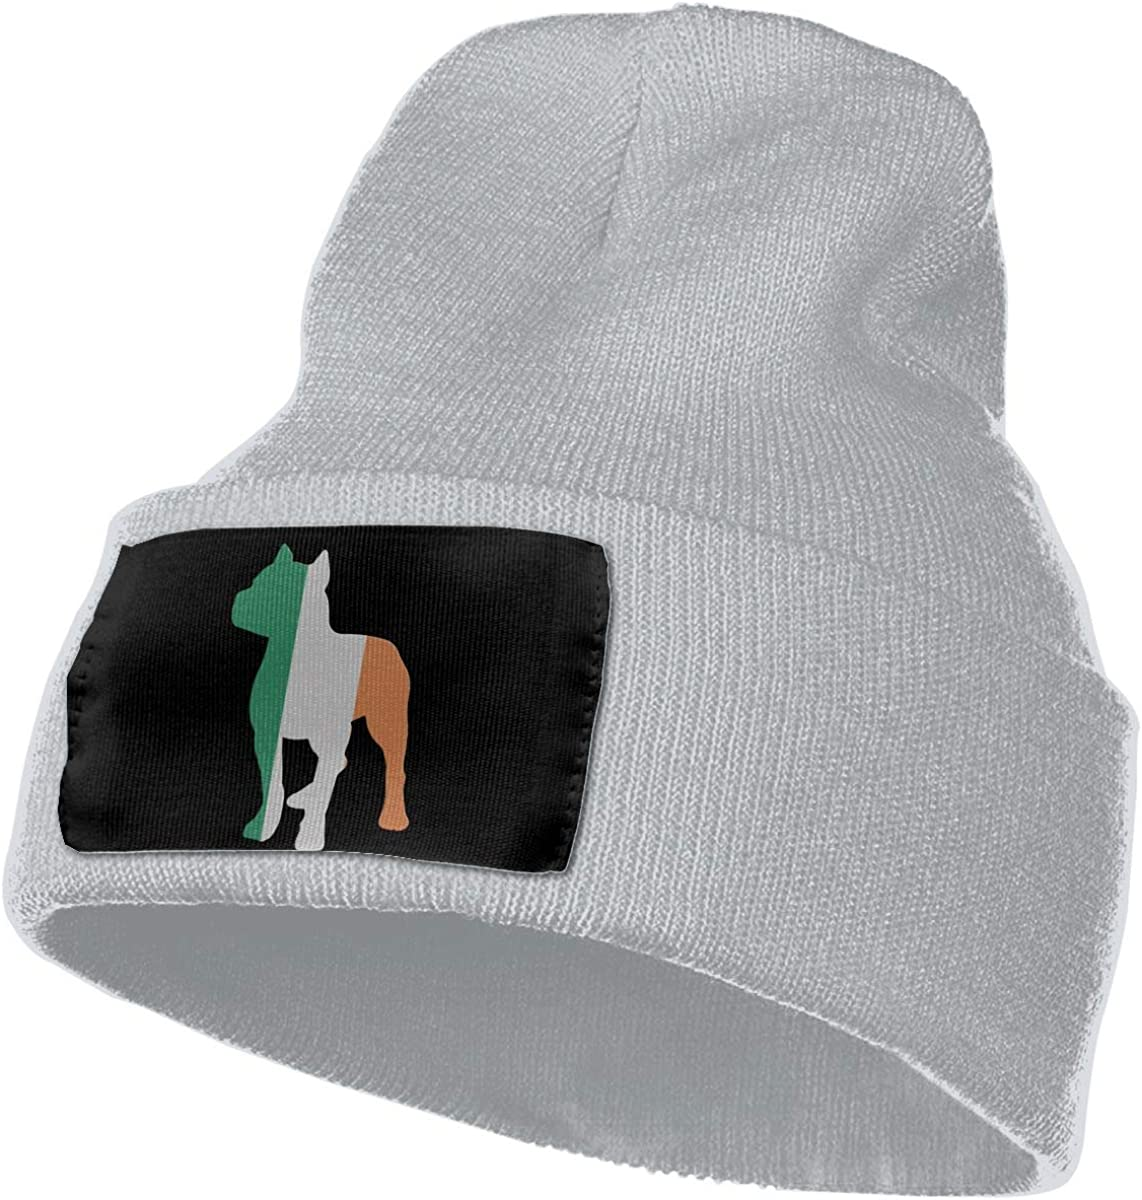 MXMAOM9MX Patriotic Pitbull Irish Flag Warm Knitting Hat Mens Womens 100/% Acrylic Beanie Hat